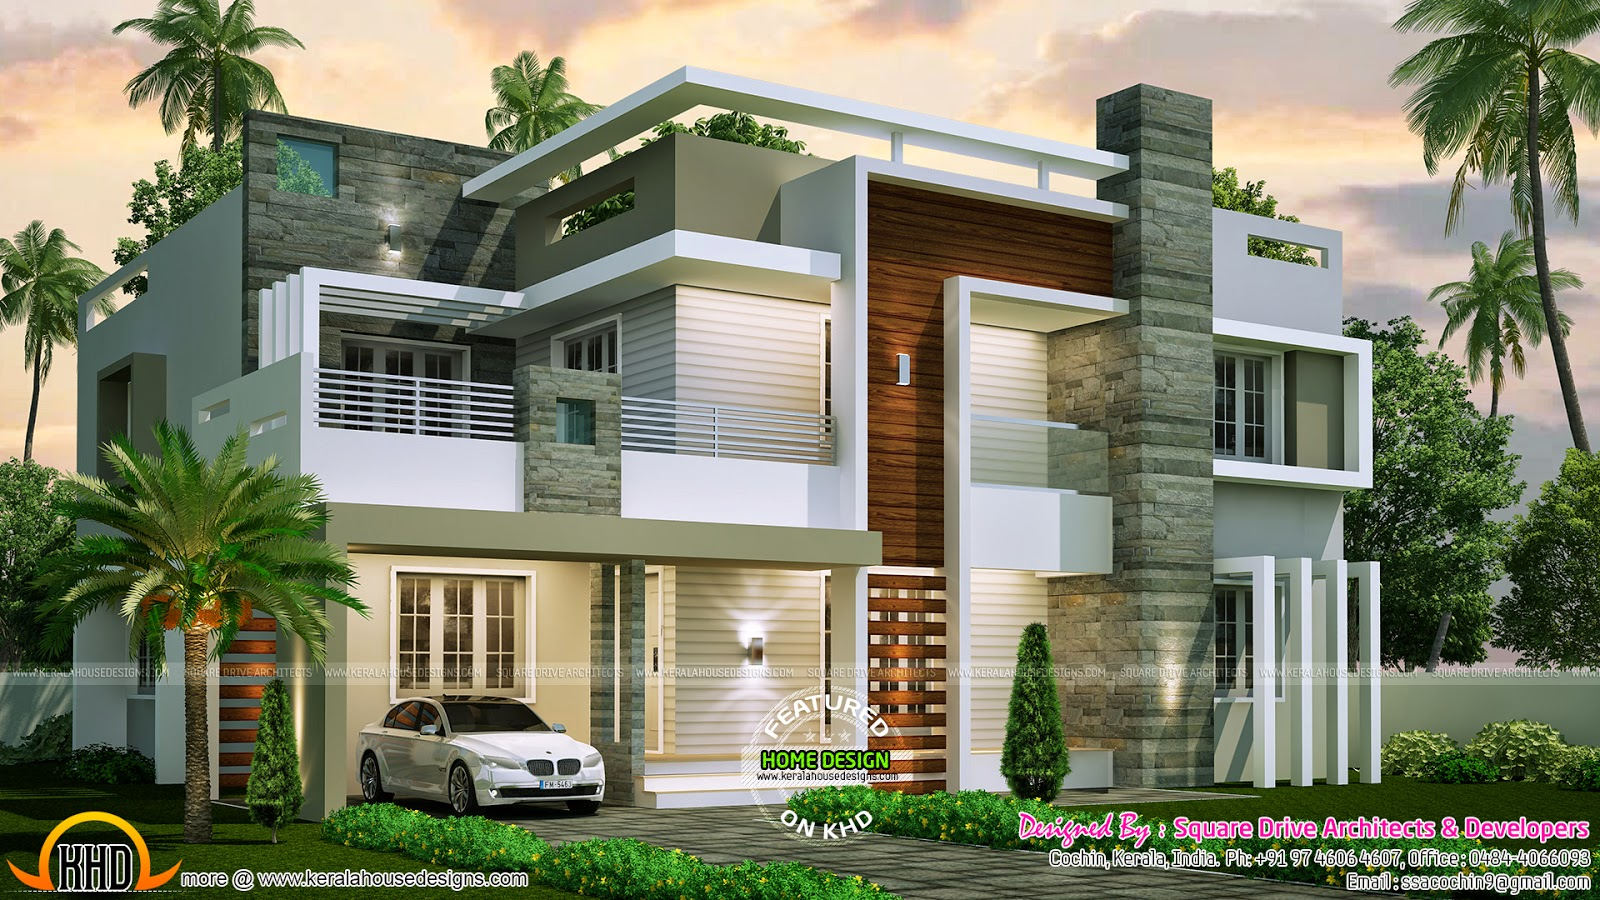 4 bedroom contemporary home design kerala home design and floor plans Modern home plans 2015